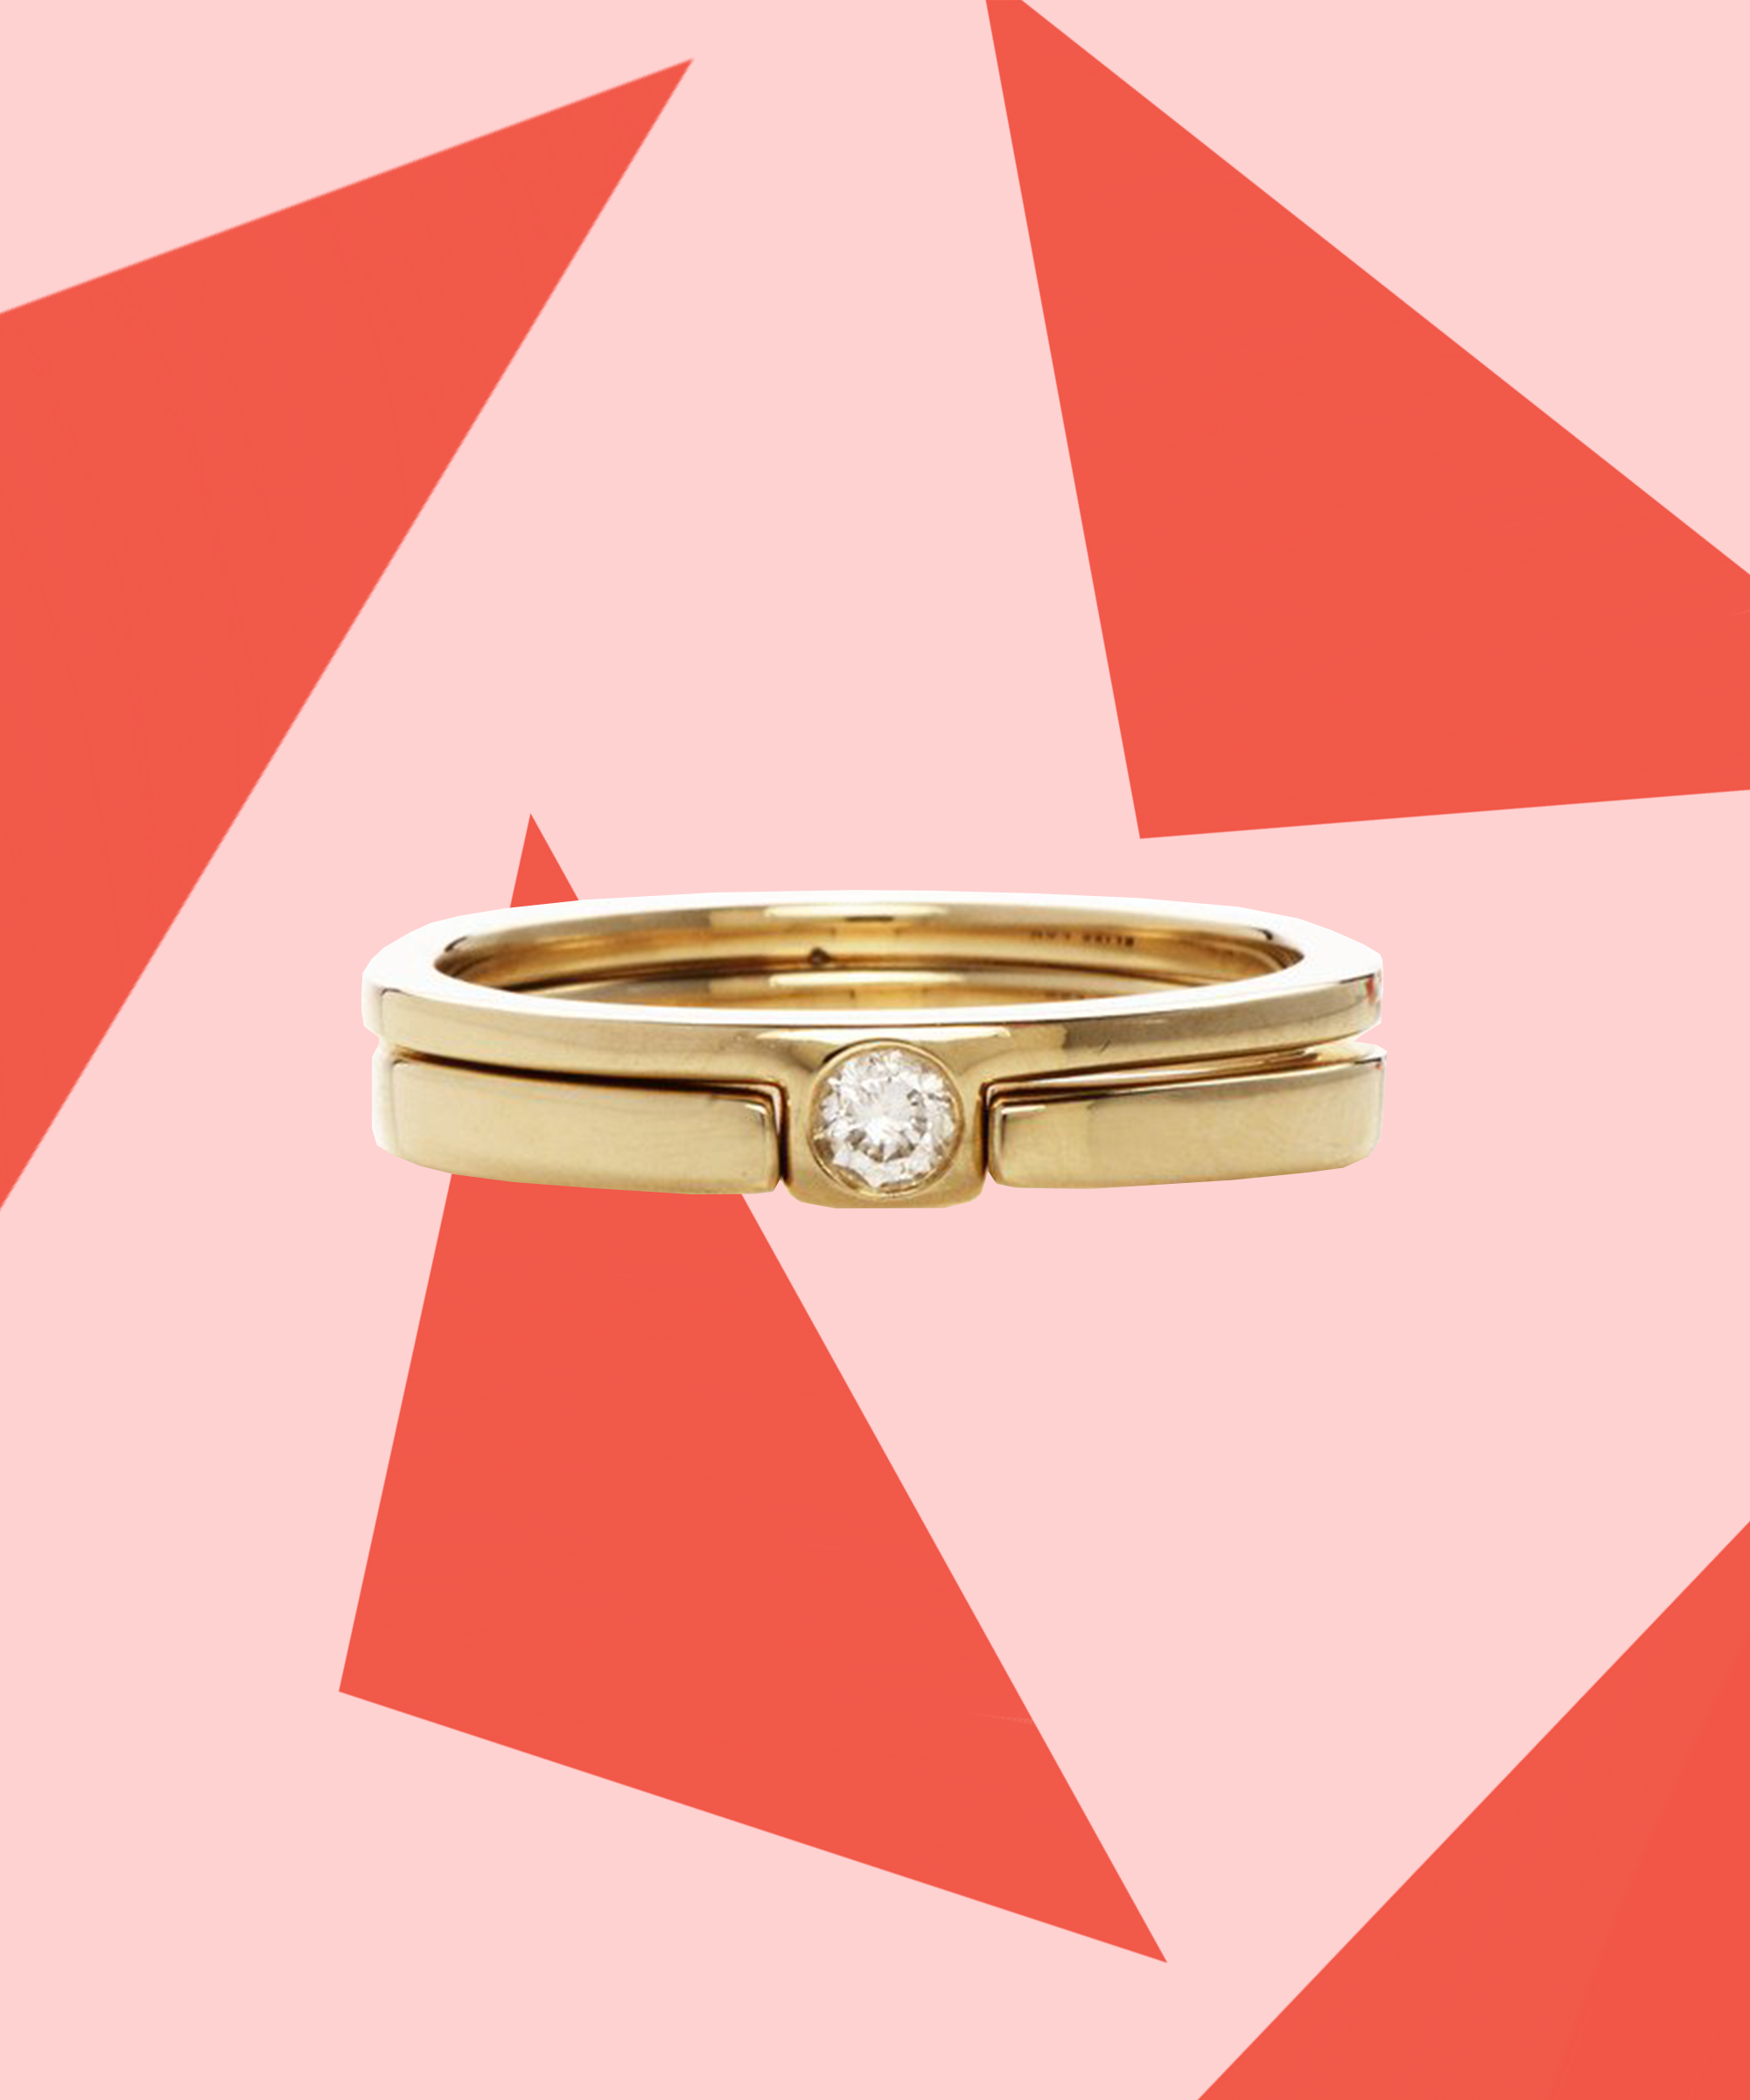 Minimalist Engagement Rings - Simple Design Bands